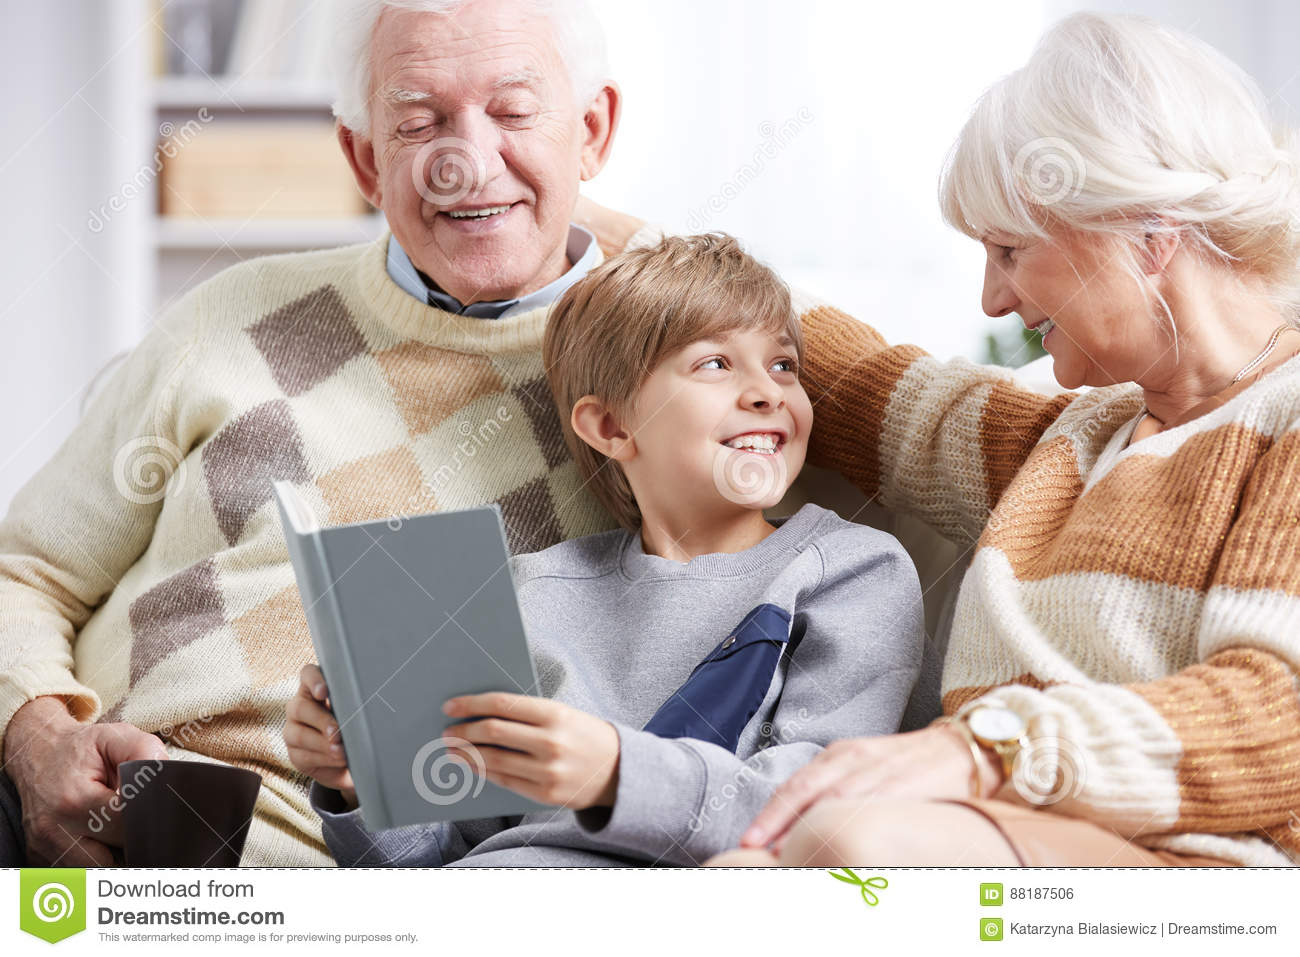 Watch How to Be Good Grandparents video